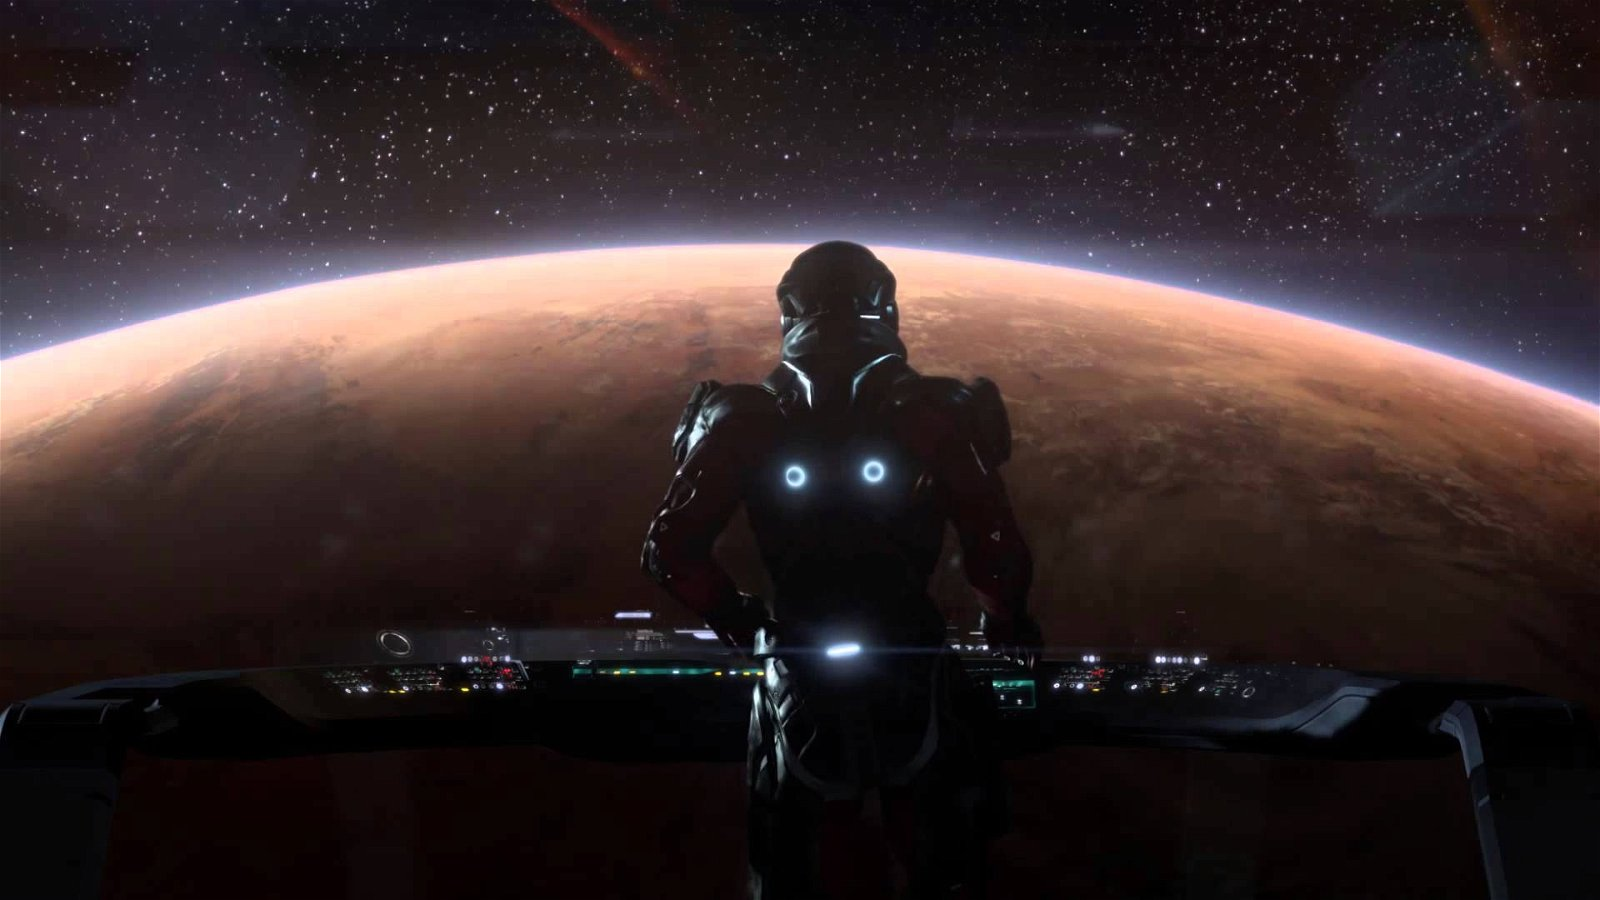 Mass Effect: Andromeda Deluxe Edition and Boxart Leaked Ahead of Schedule 3